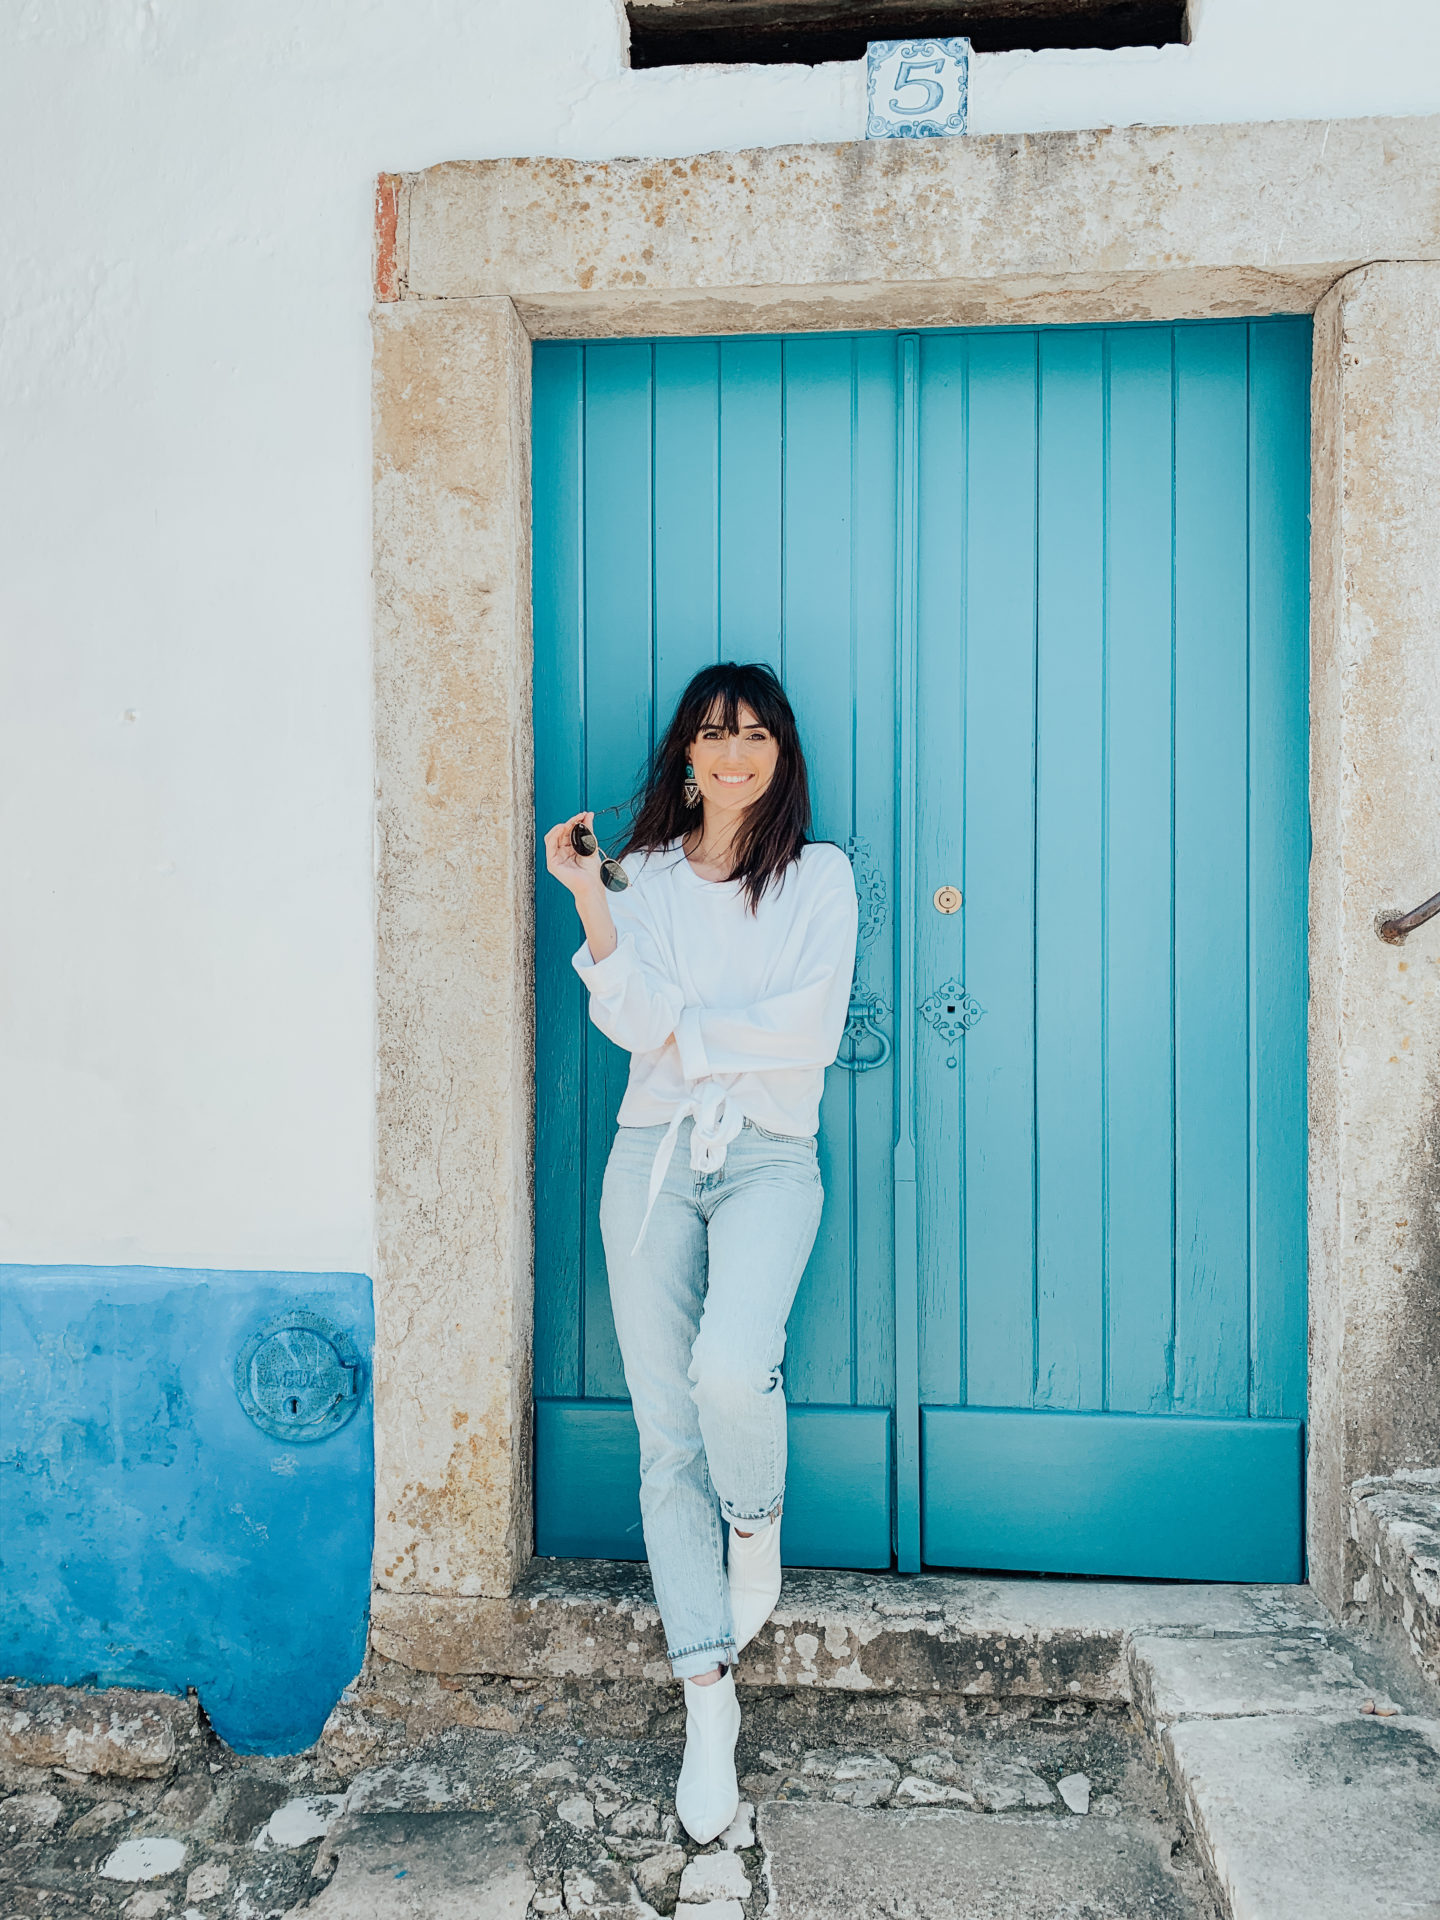 A Day In Óbidos, Portugal - Ana Free - thecasualfree.com